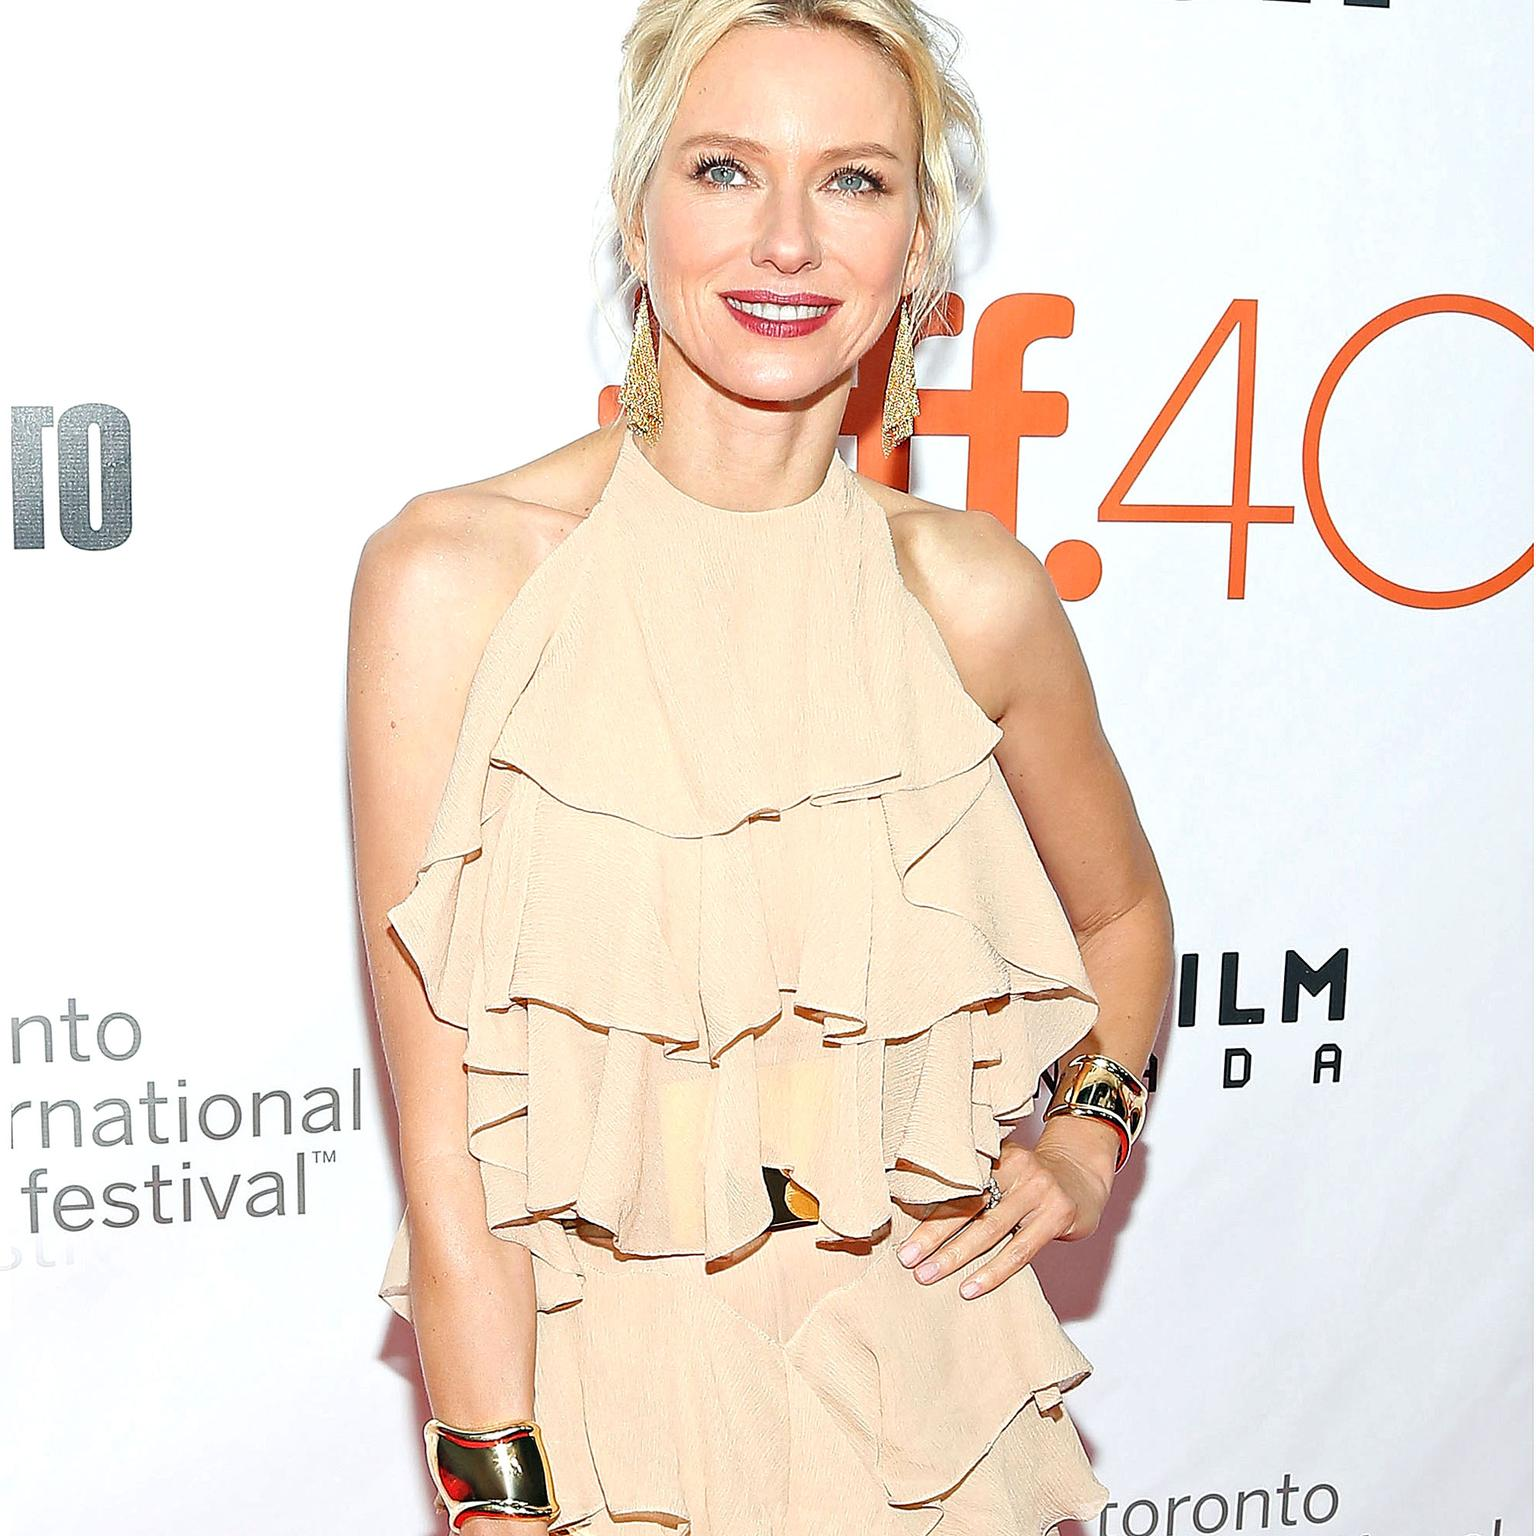 Naomi Watts wearing Elsa Peretti Bone cuffs